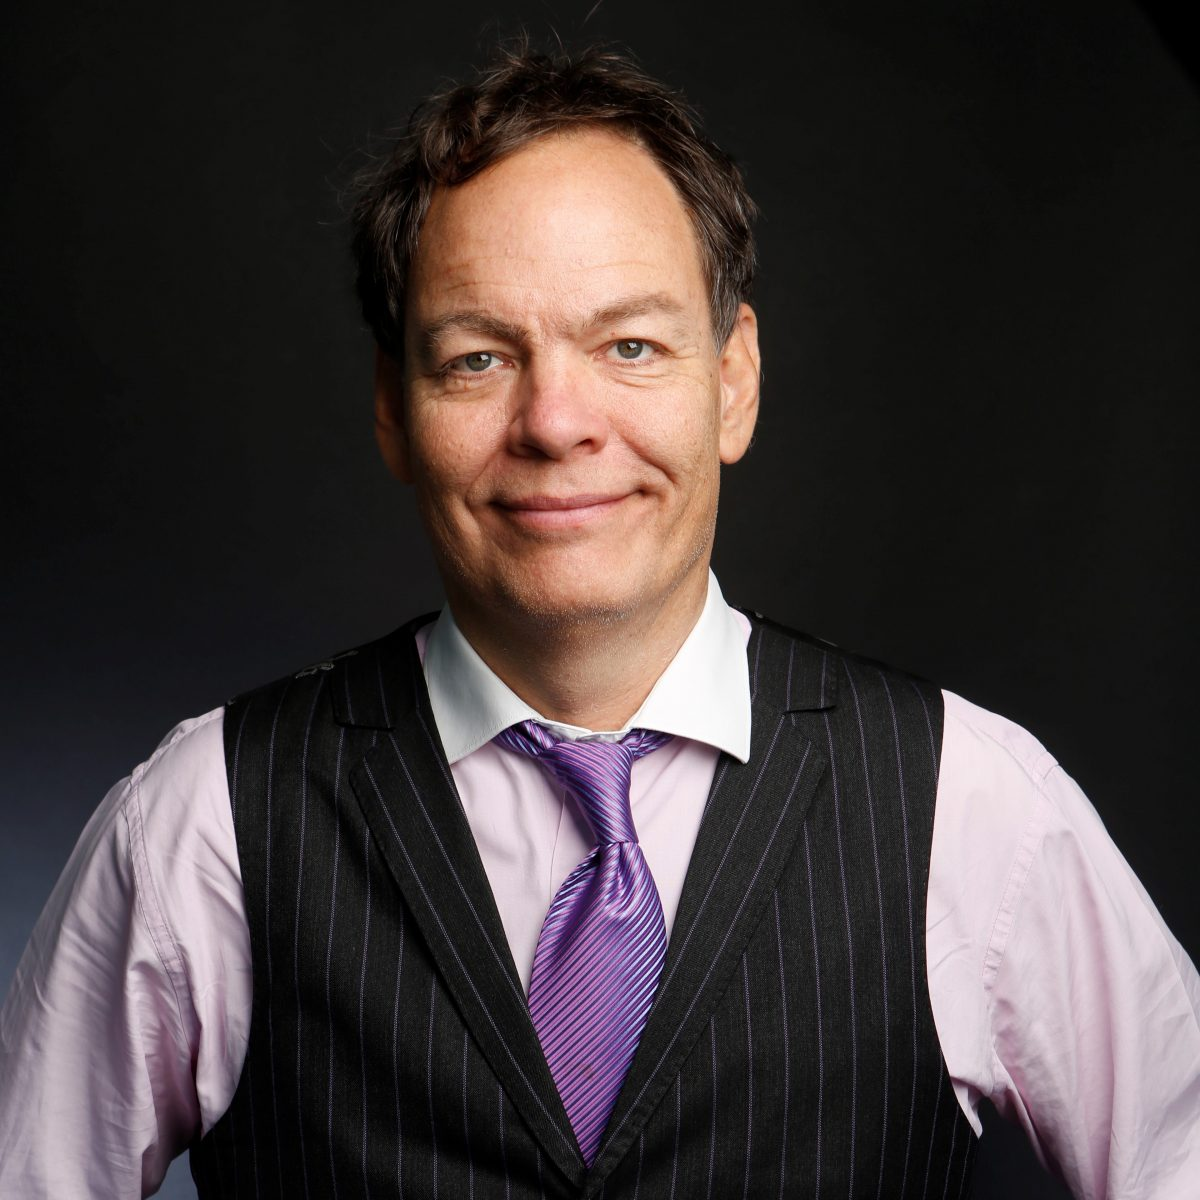 Max Keiser: Fed's 'Permanent QE' Flipped Bitcoin Price Bullish (Interview)